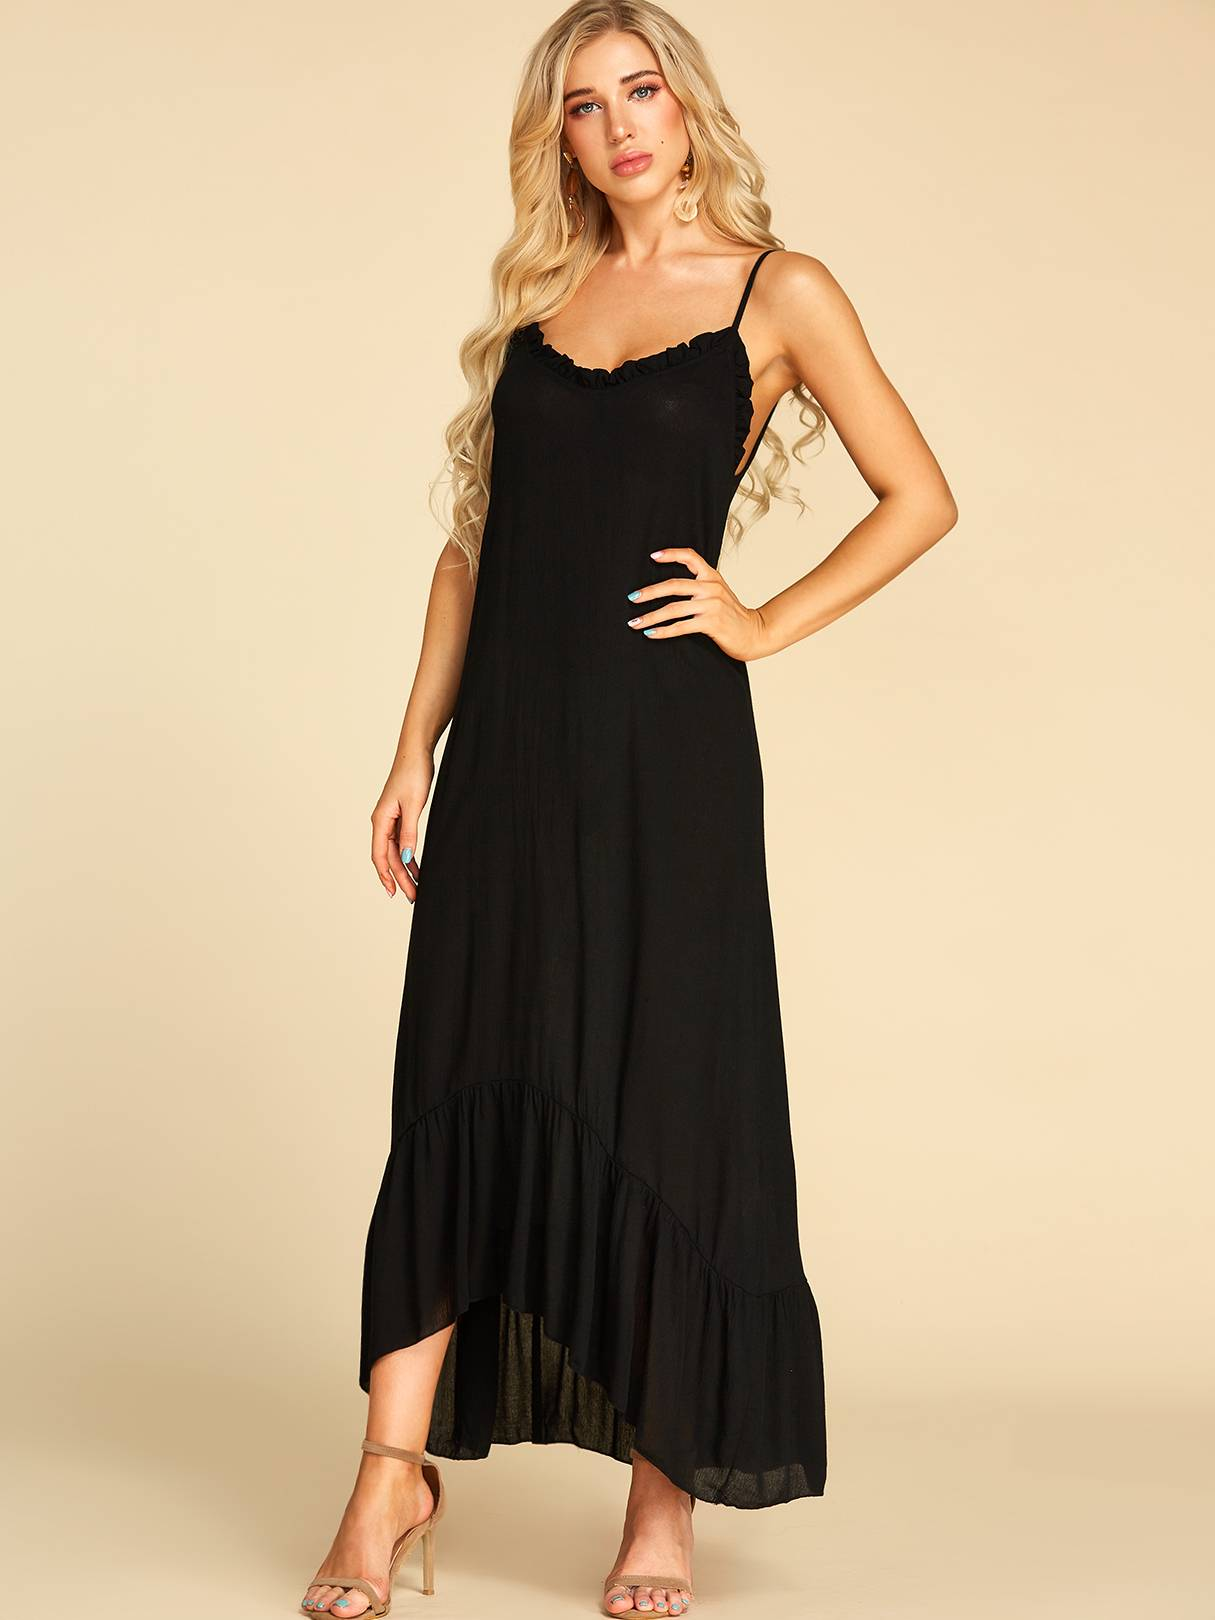 Image of Yoins Black Ruffle Trim V-neck Sleeveless Dress